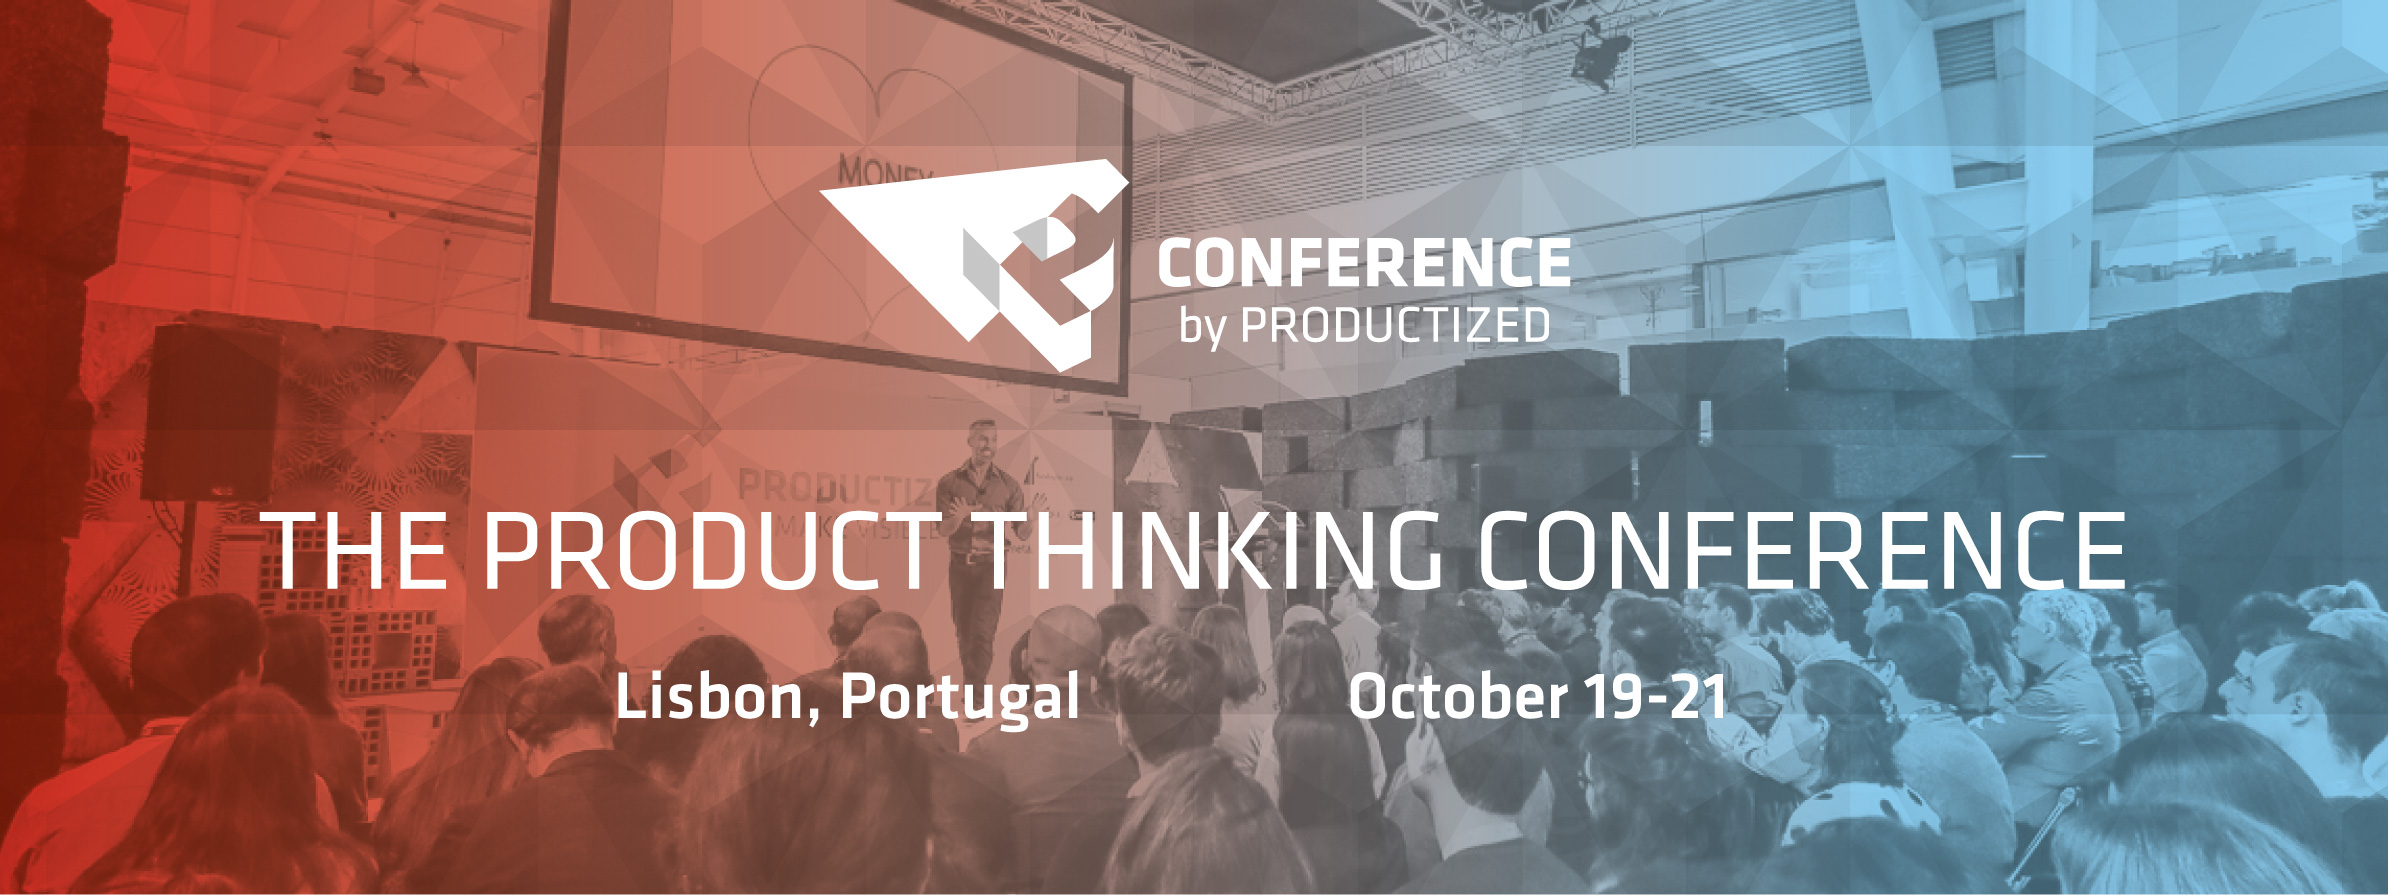 the product thinking conference